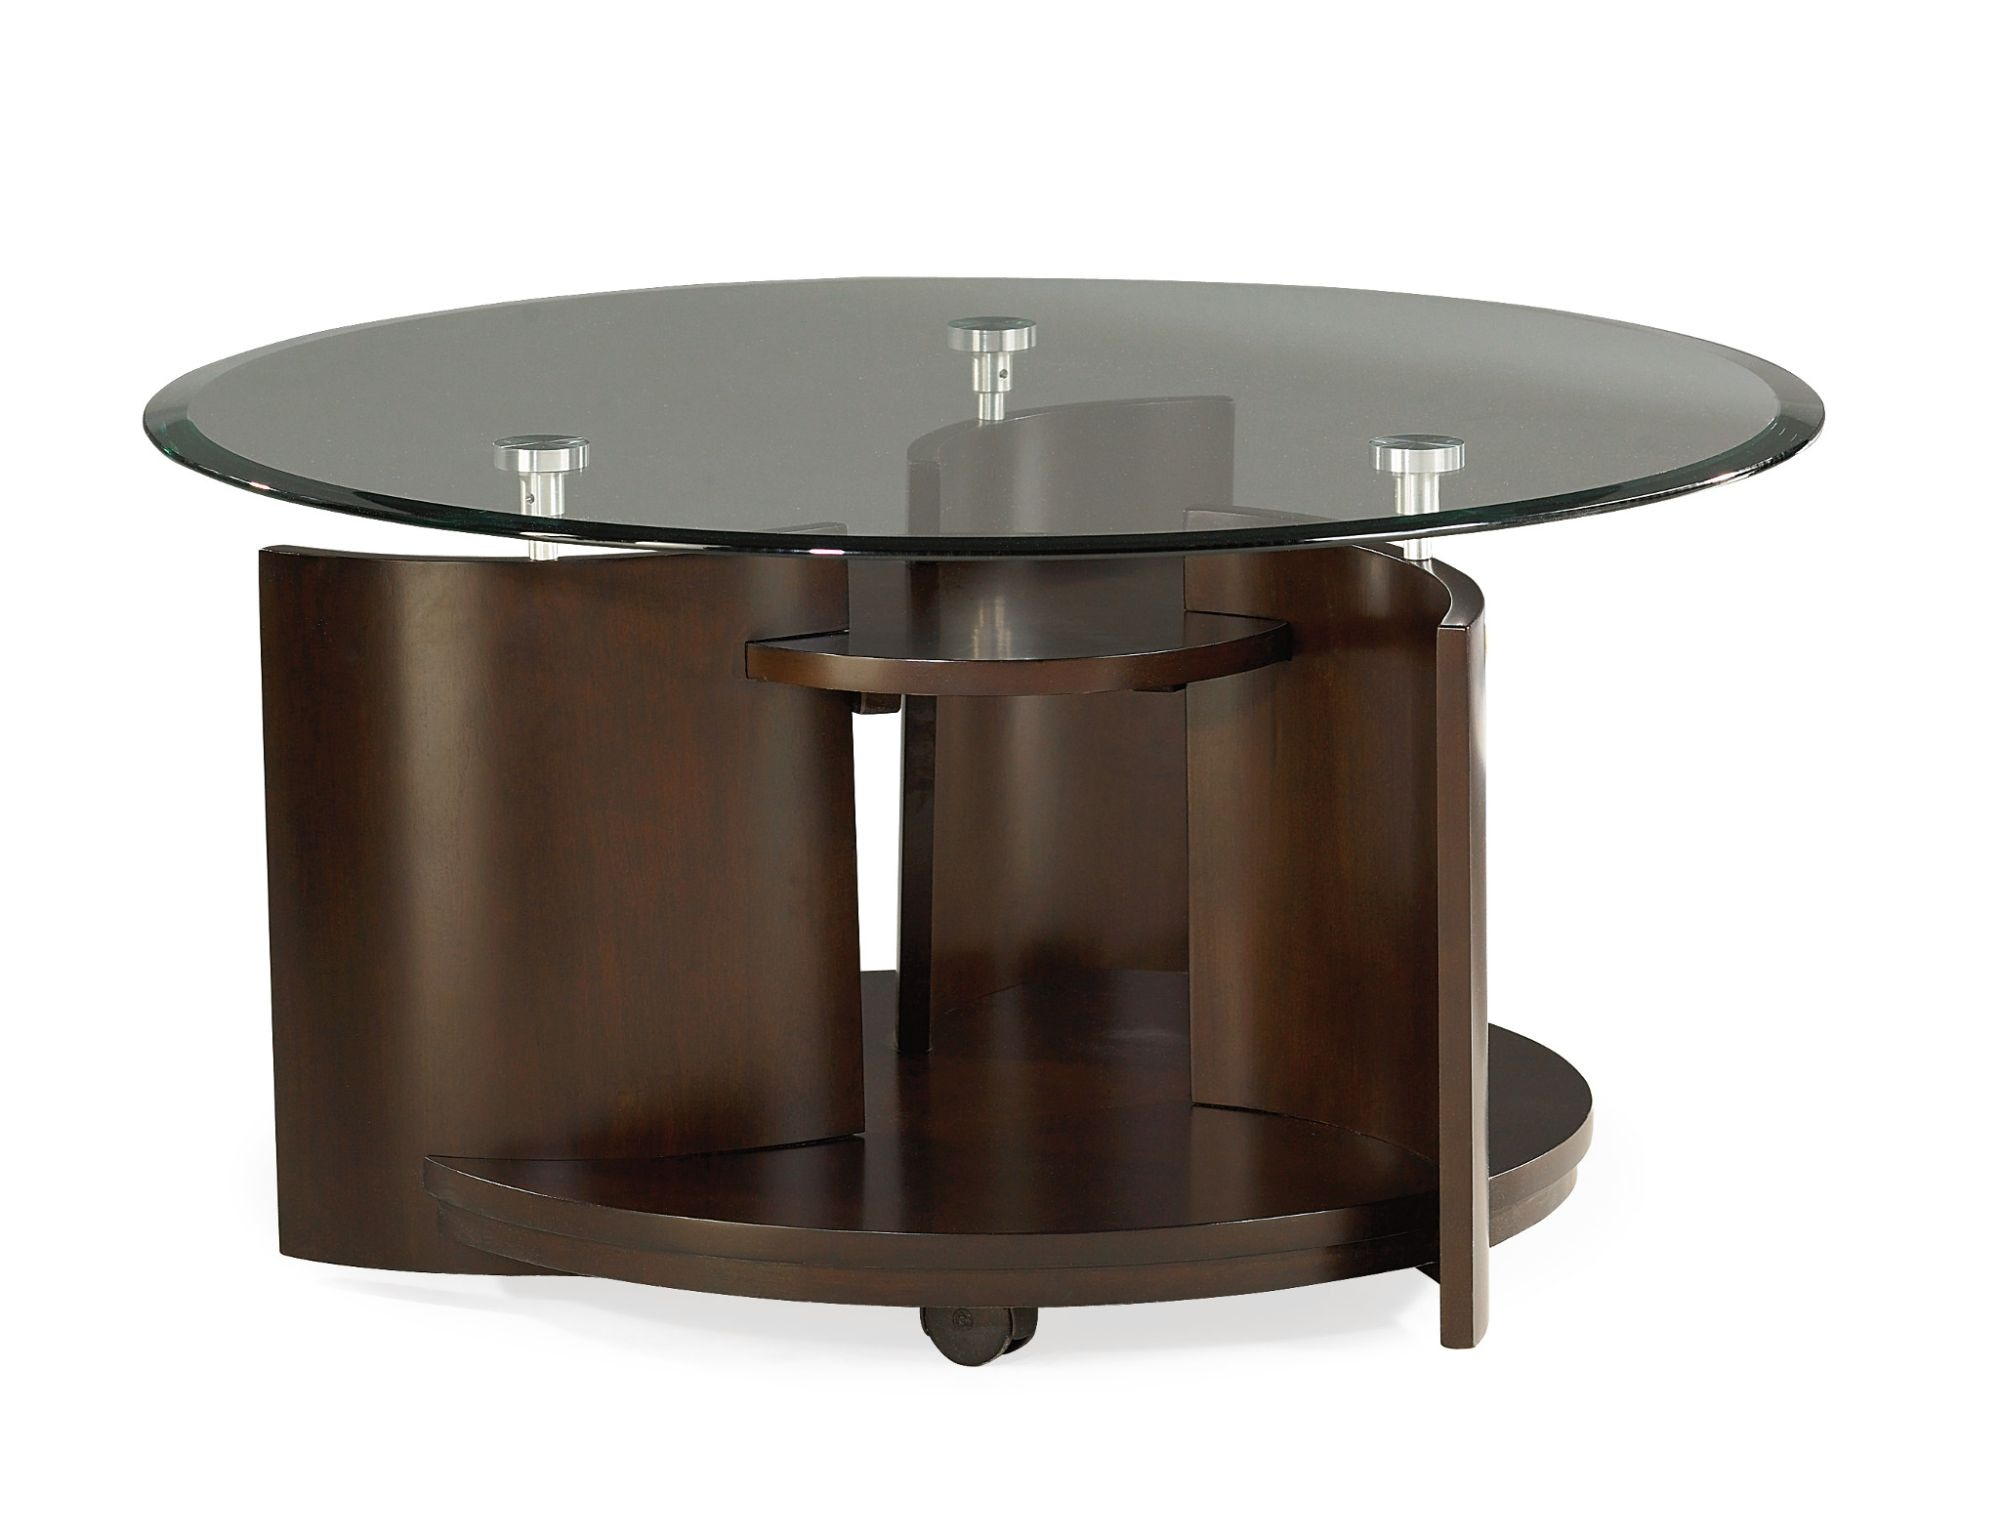 Hammary Living Room Round Cocktail Table - Kd 105-911 - Great Deals on ...